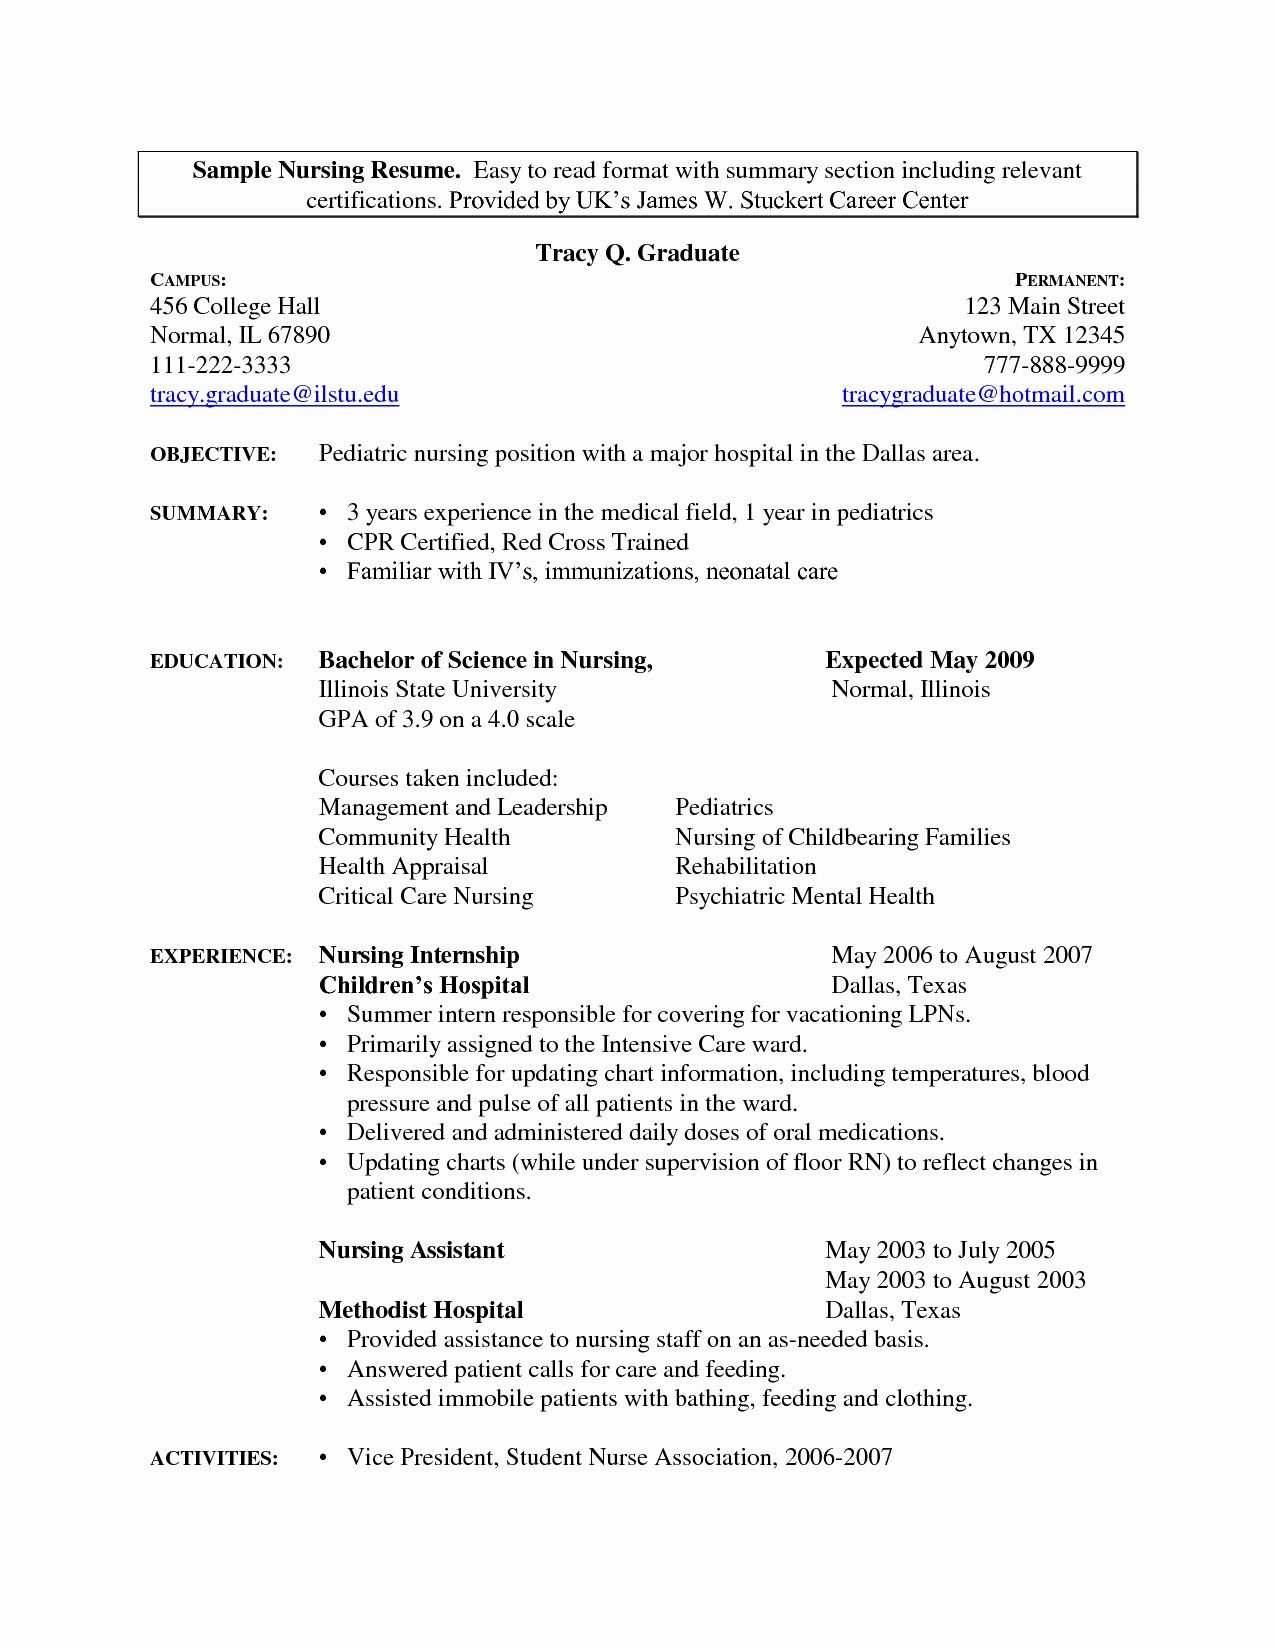 Updated Resume 2018 - Medical Resume Templates Luxury Medical Resume Template Fresh